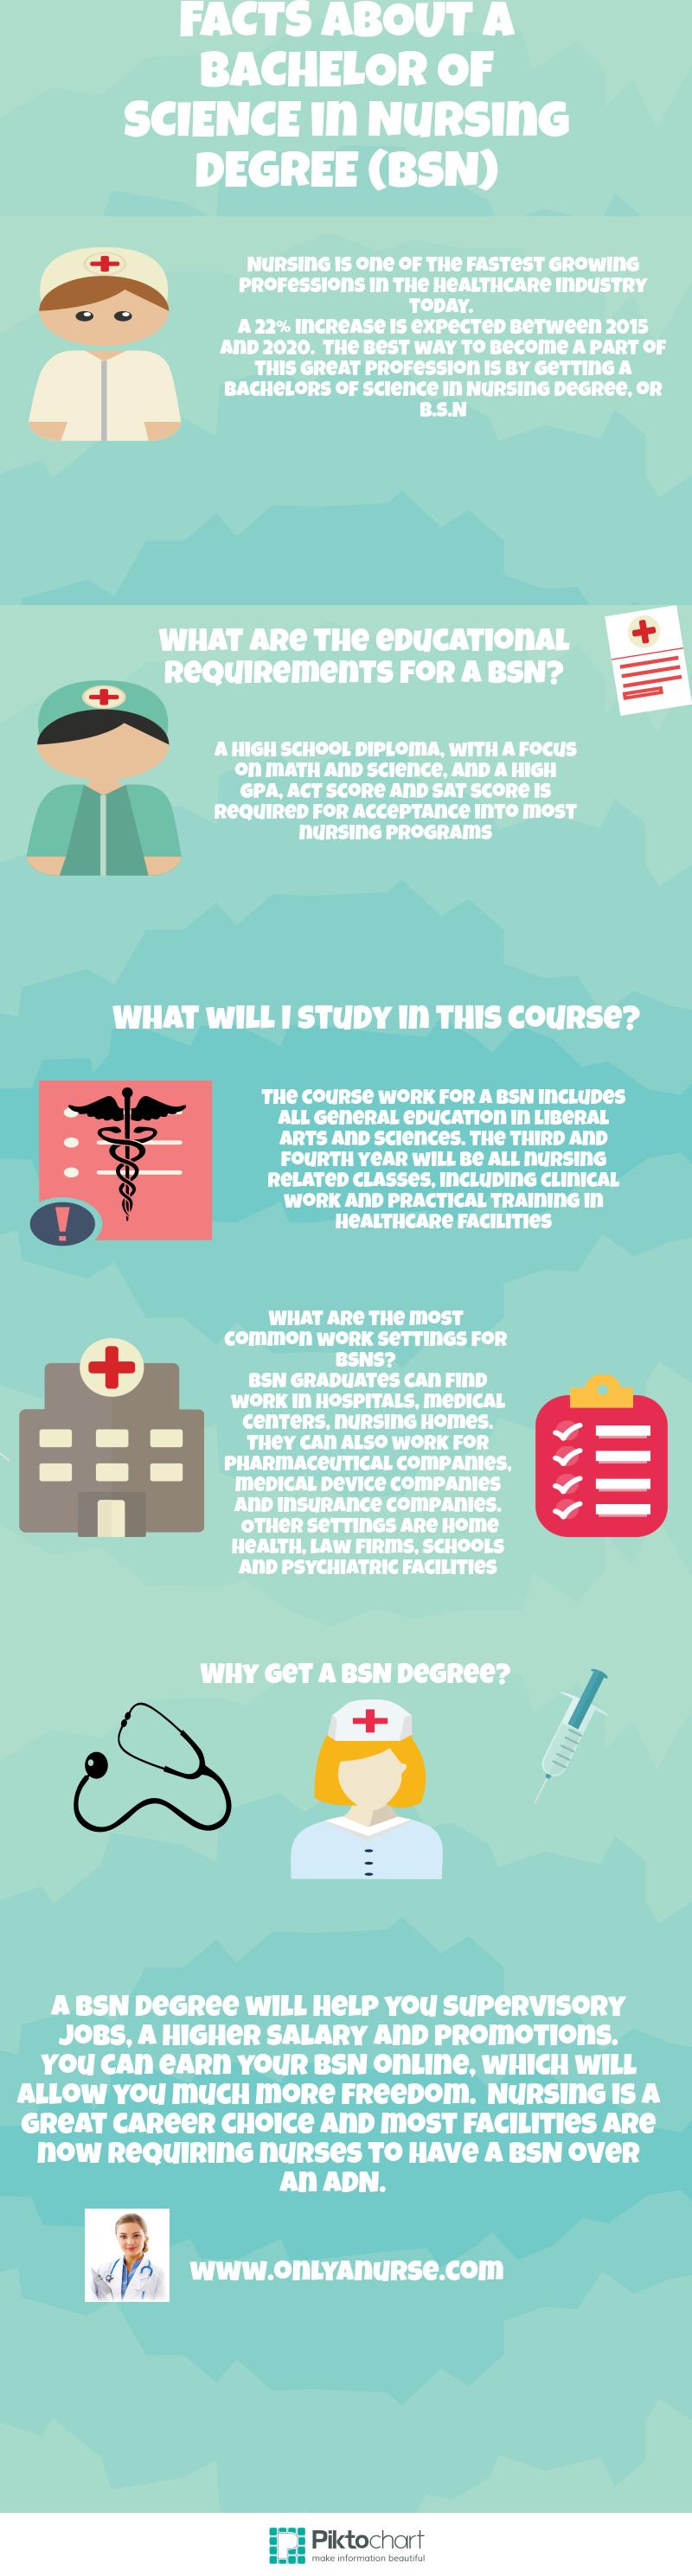 Facts about BSN Bachelors degree in nursing